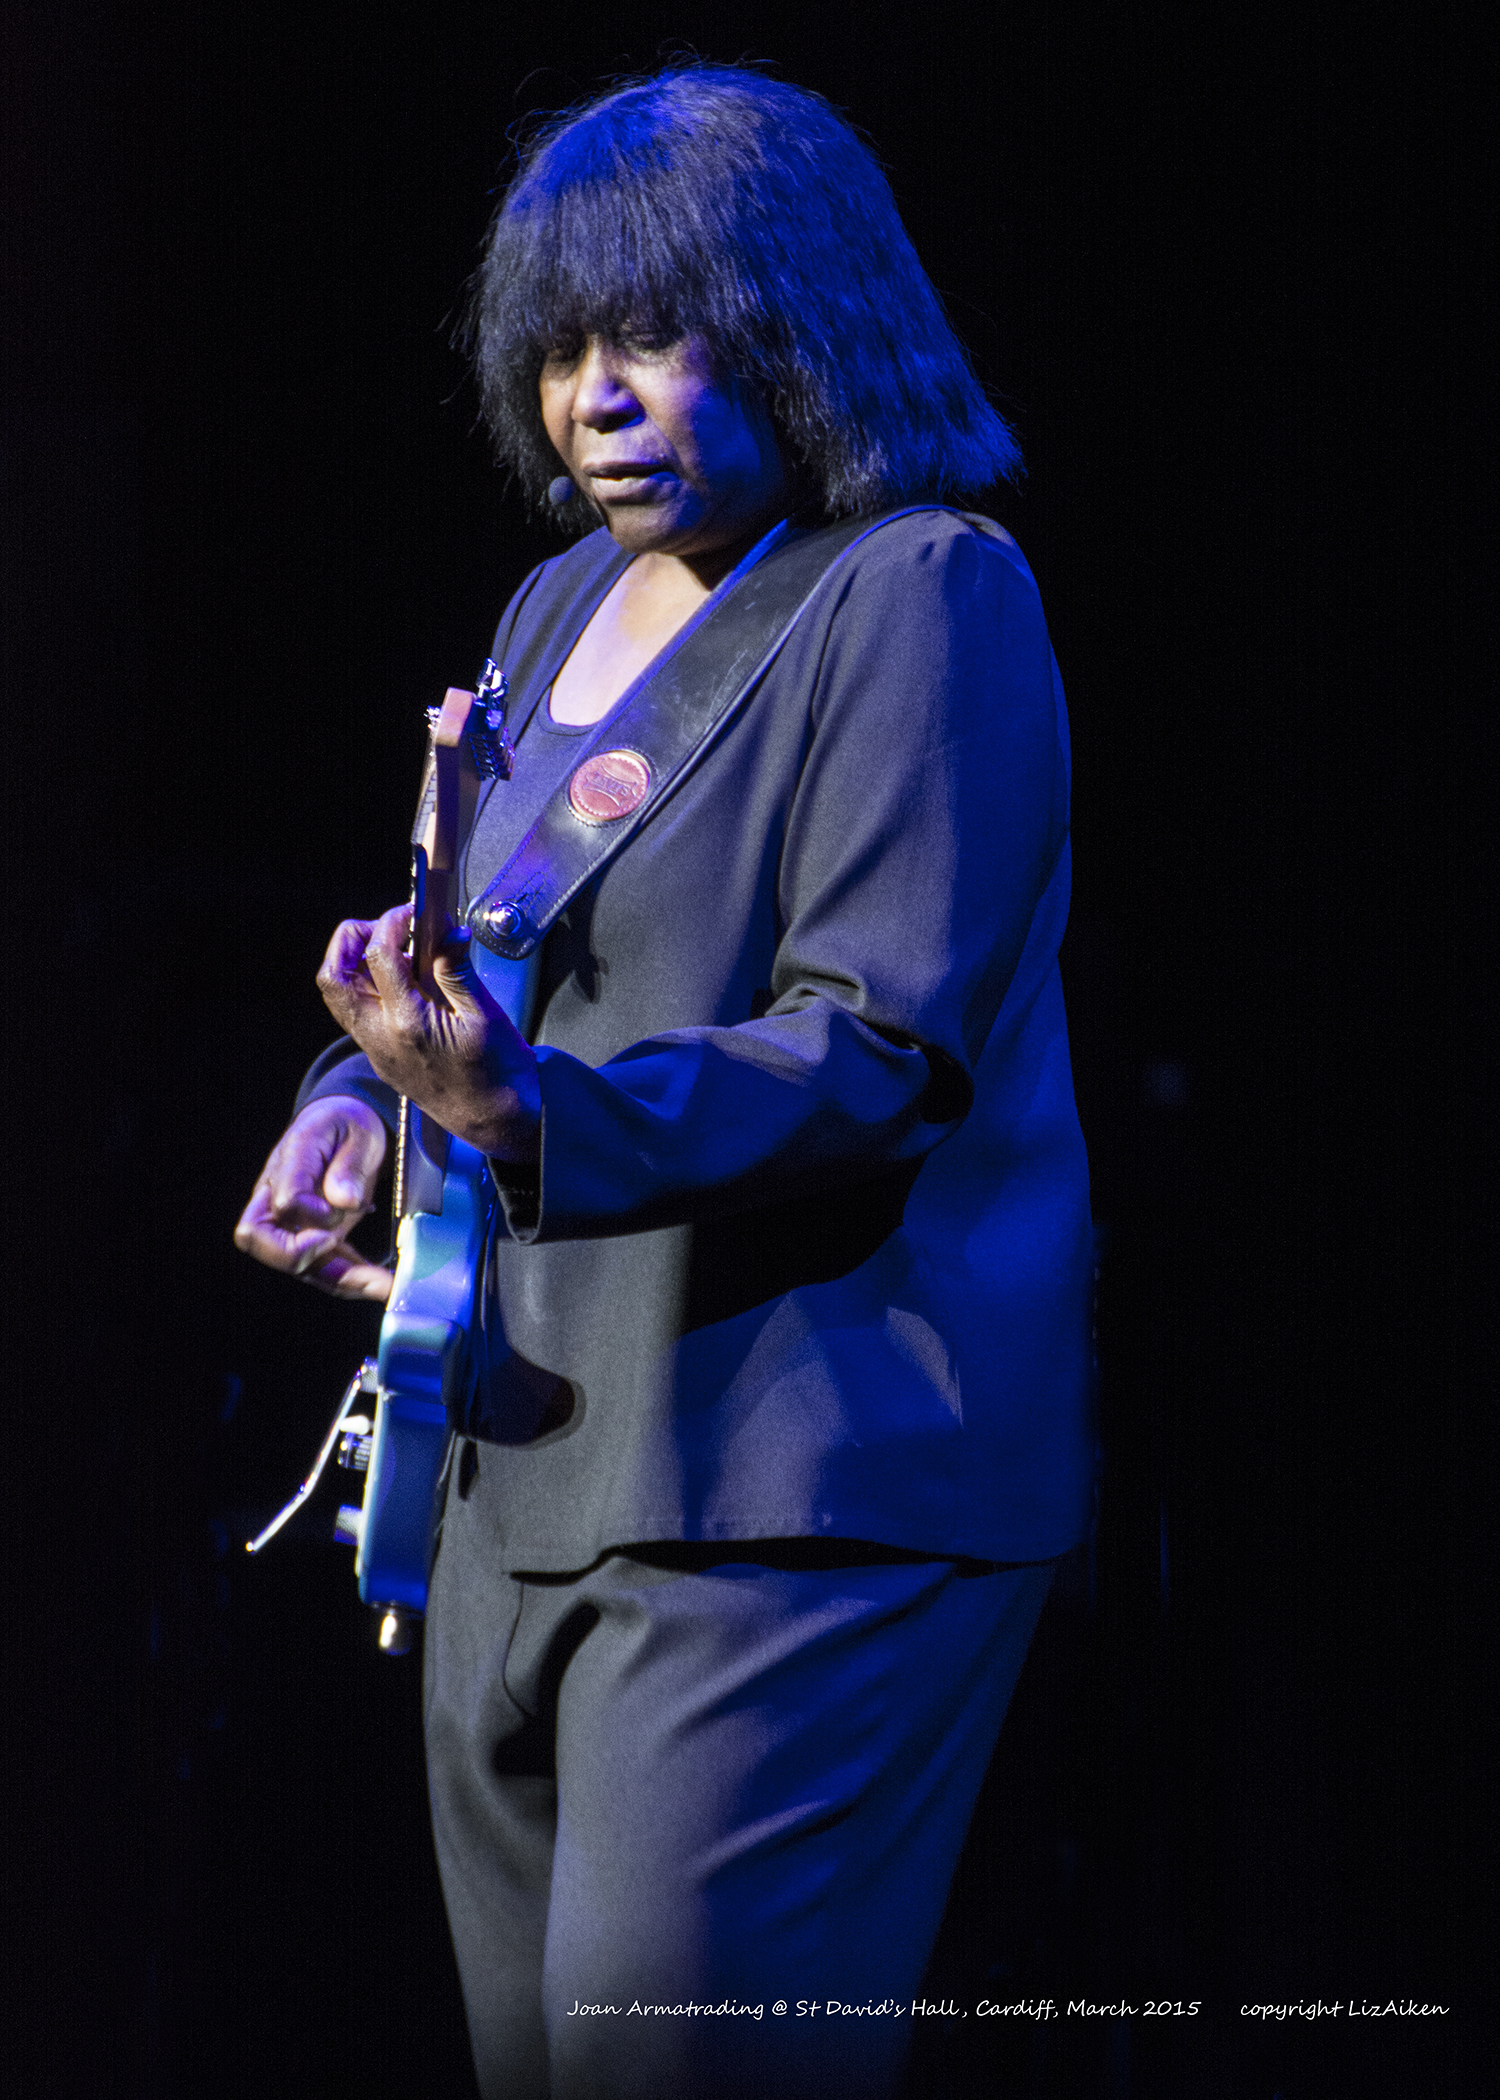 Joan Armatrading Quotes: Solo Tour: Gig Review